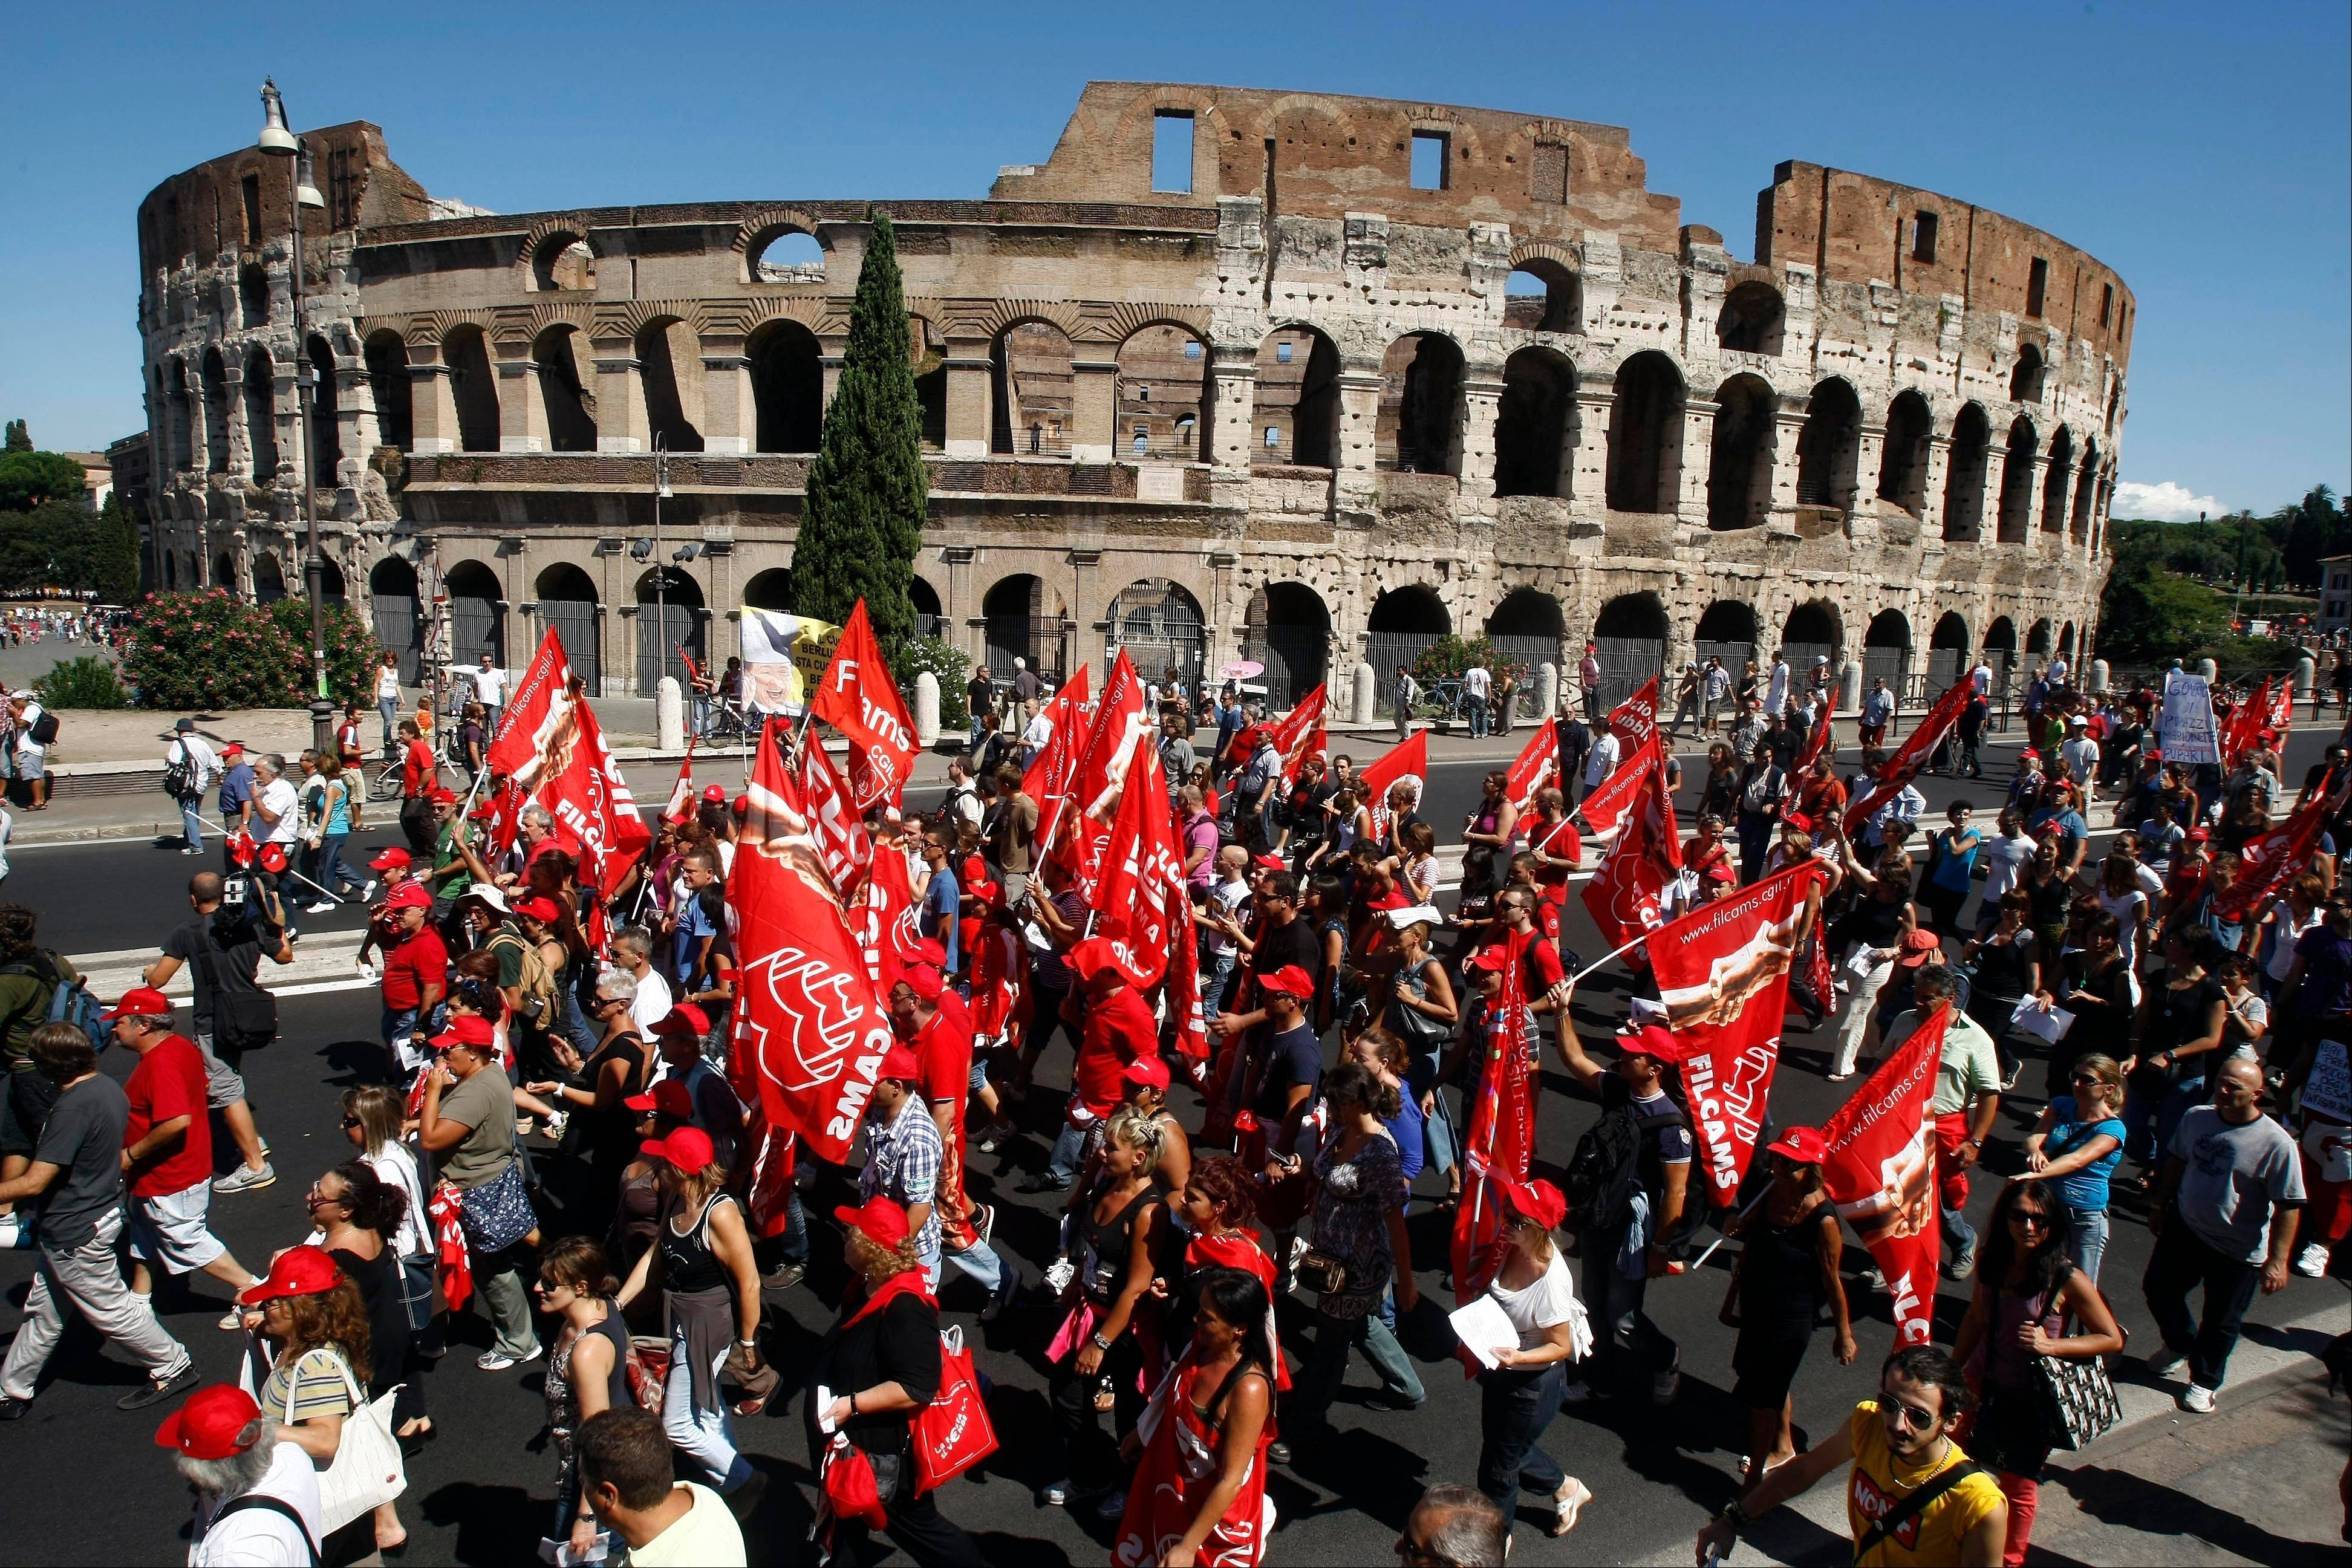 Demonstrators march past the Colosseum during a general strike in Rome on Tuesday. With Silvio Berlusconi's government under increasing pressure to produce credible measures to balance the budget, a strike by Italy's largest labor union against an austerity package shut down air, land and sea transport, stalled manufacturing and curtailed government services throughout the country on Tuesday.